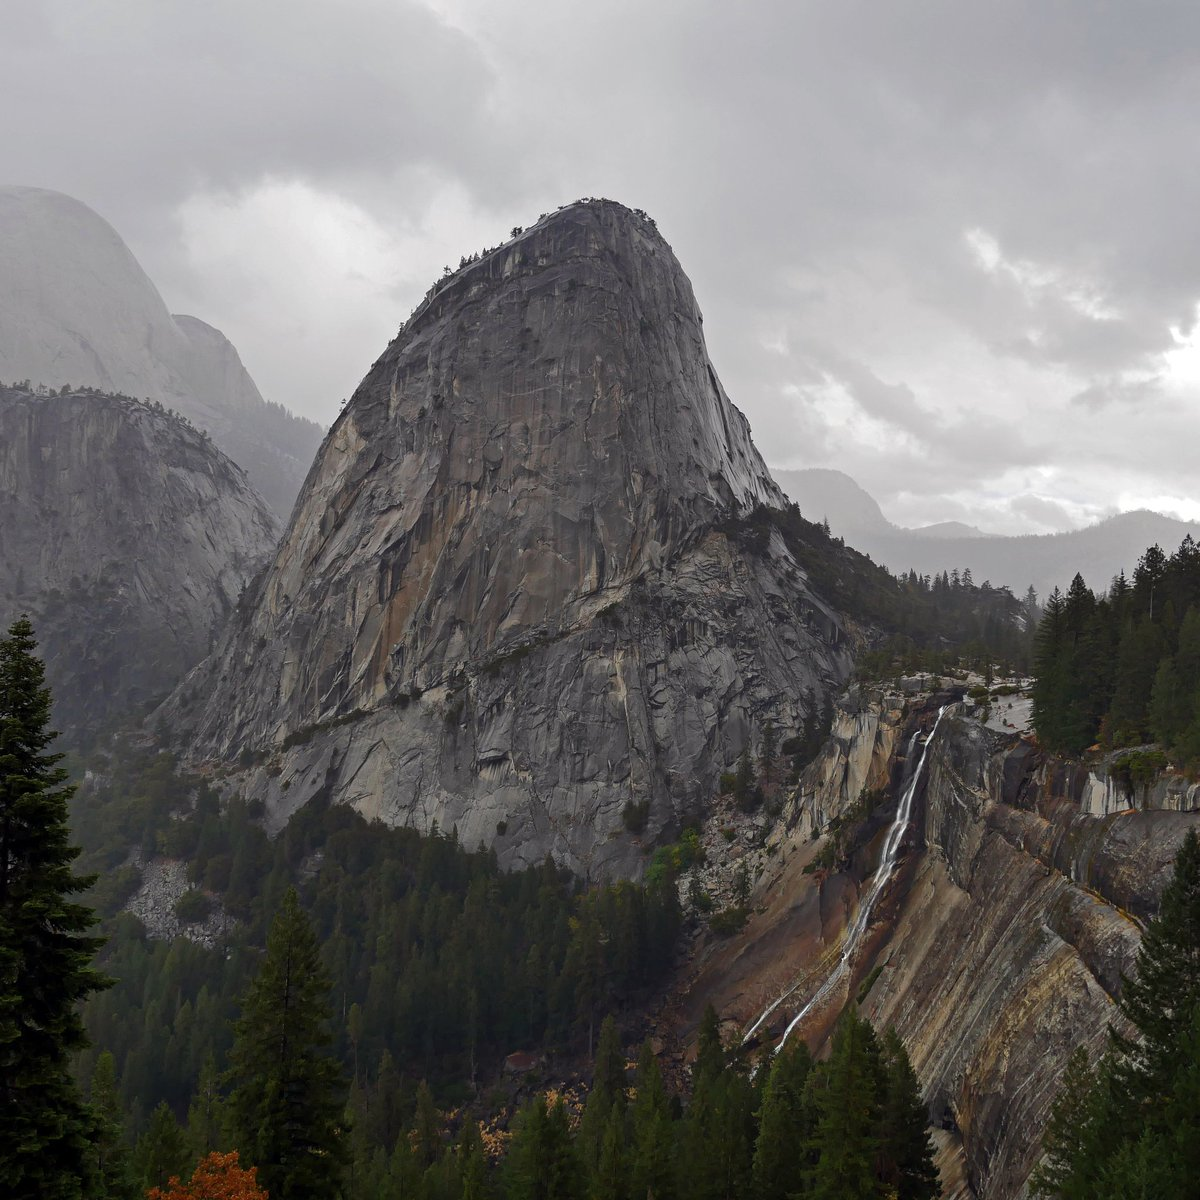 test Twitter Media - TBT Grandeur under stormy skies. On the John Muir trail looking back to Nevada Falls and Liberty Cap. Very quickly taken photograph as it was bucketing down in a sudden squall that caught us all unawares, and scrambling for waterproofs. #yosemite https://t.co/hehpxHy9rc